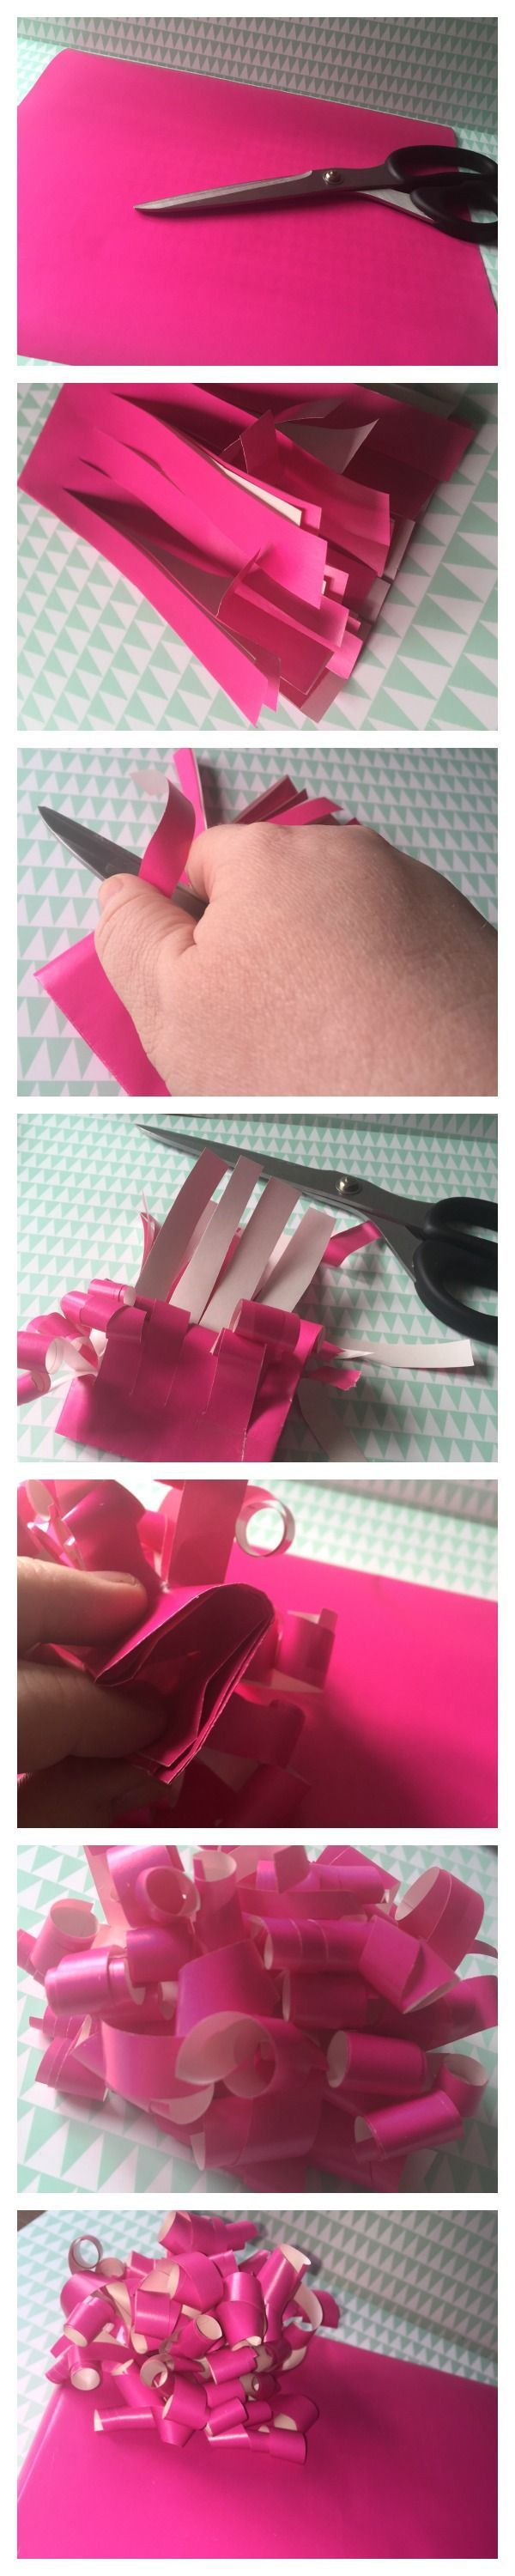 How to make a bow from leftover wrapping paper